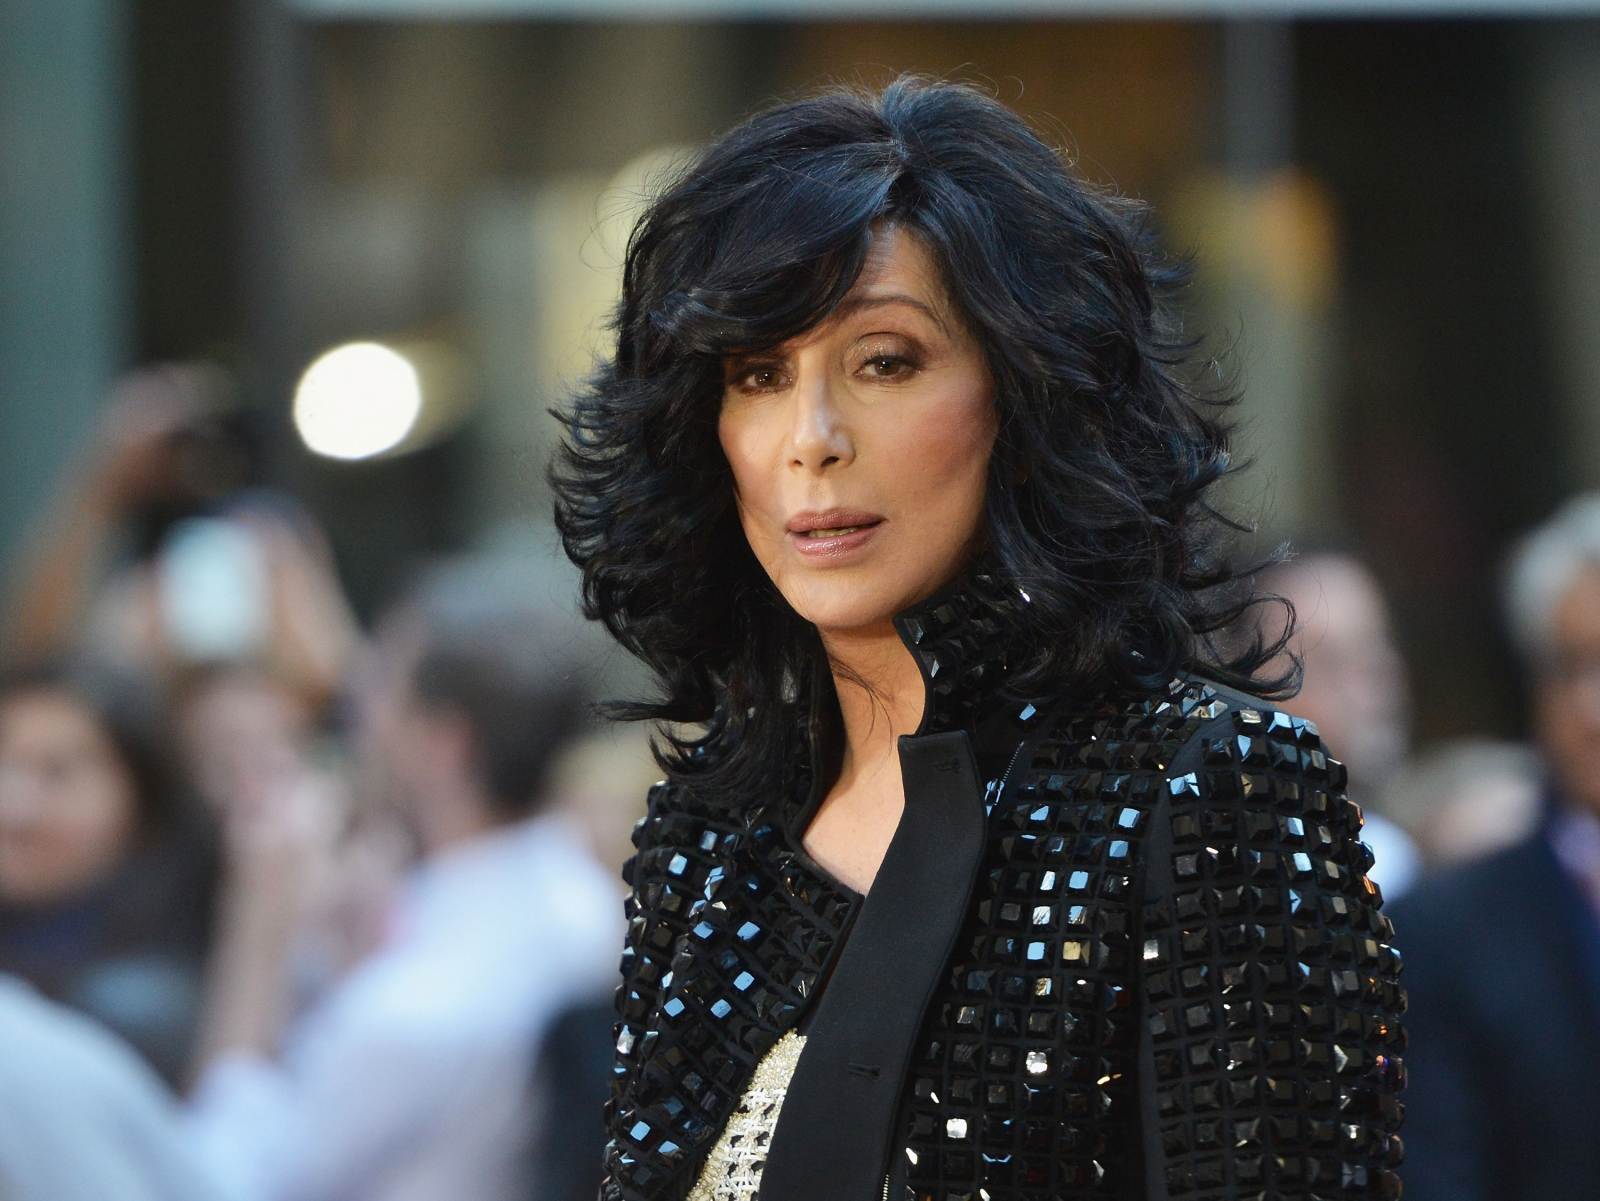 Cher compares Donald Trump to Hitler in scathing attack